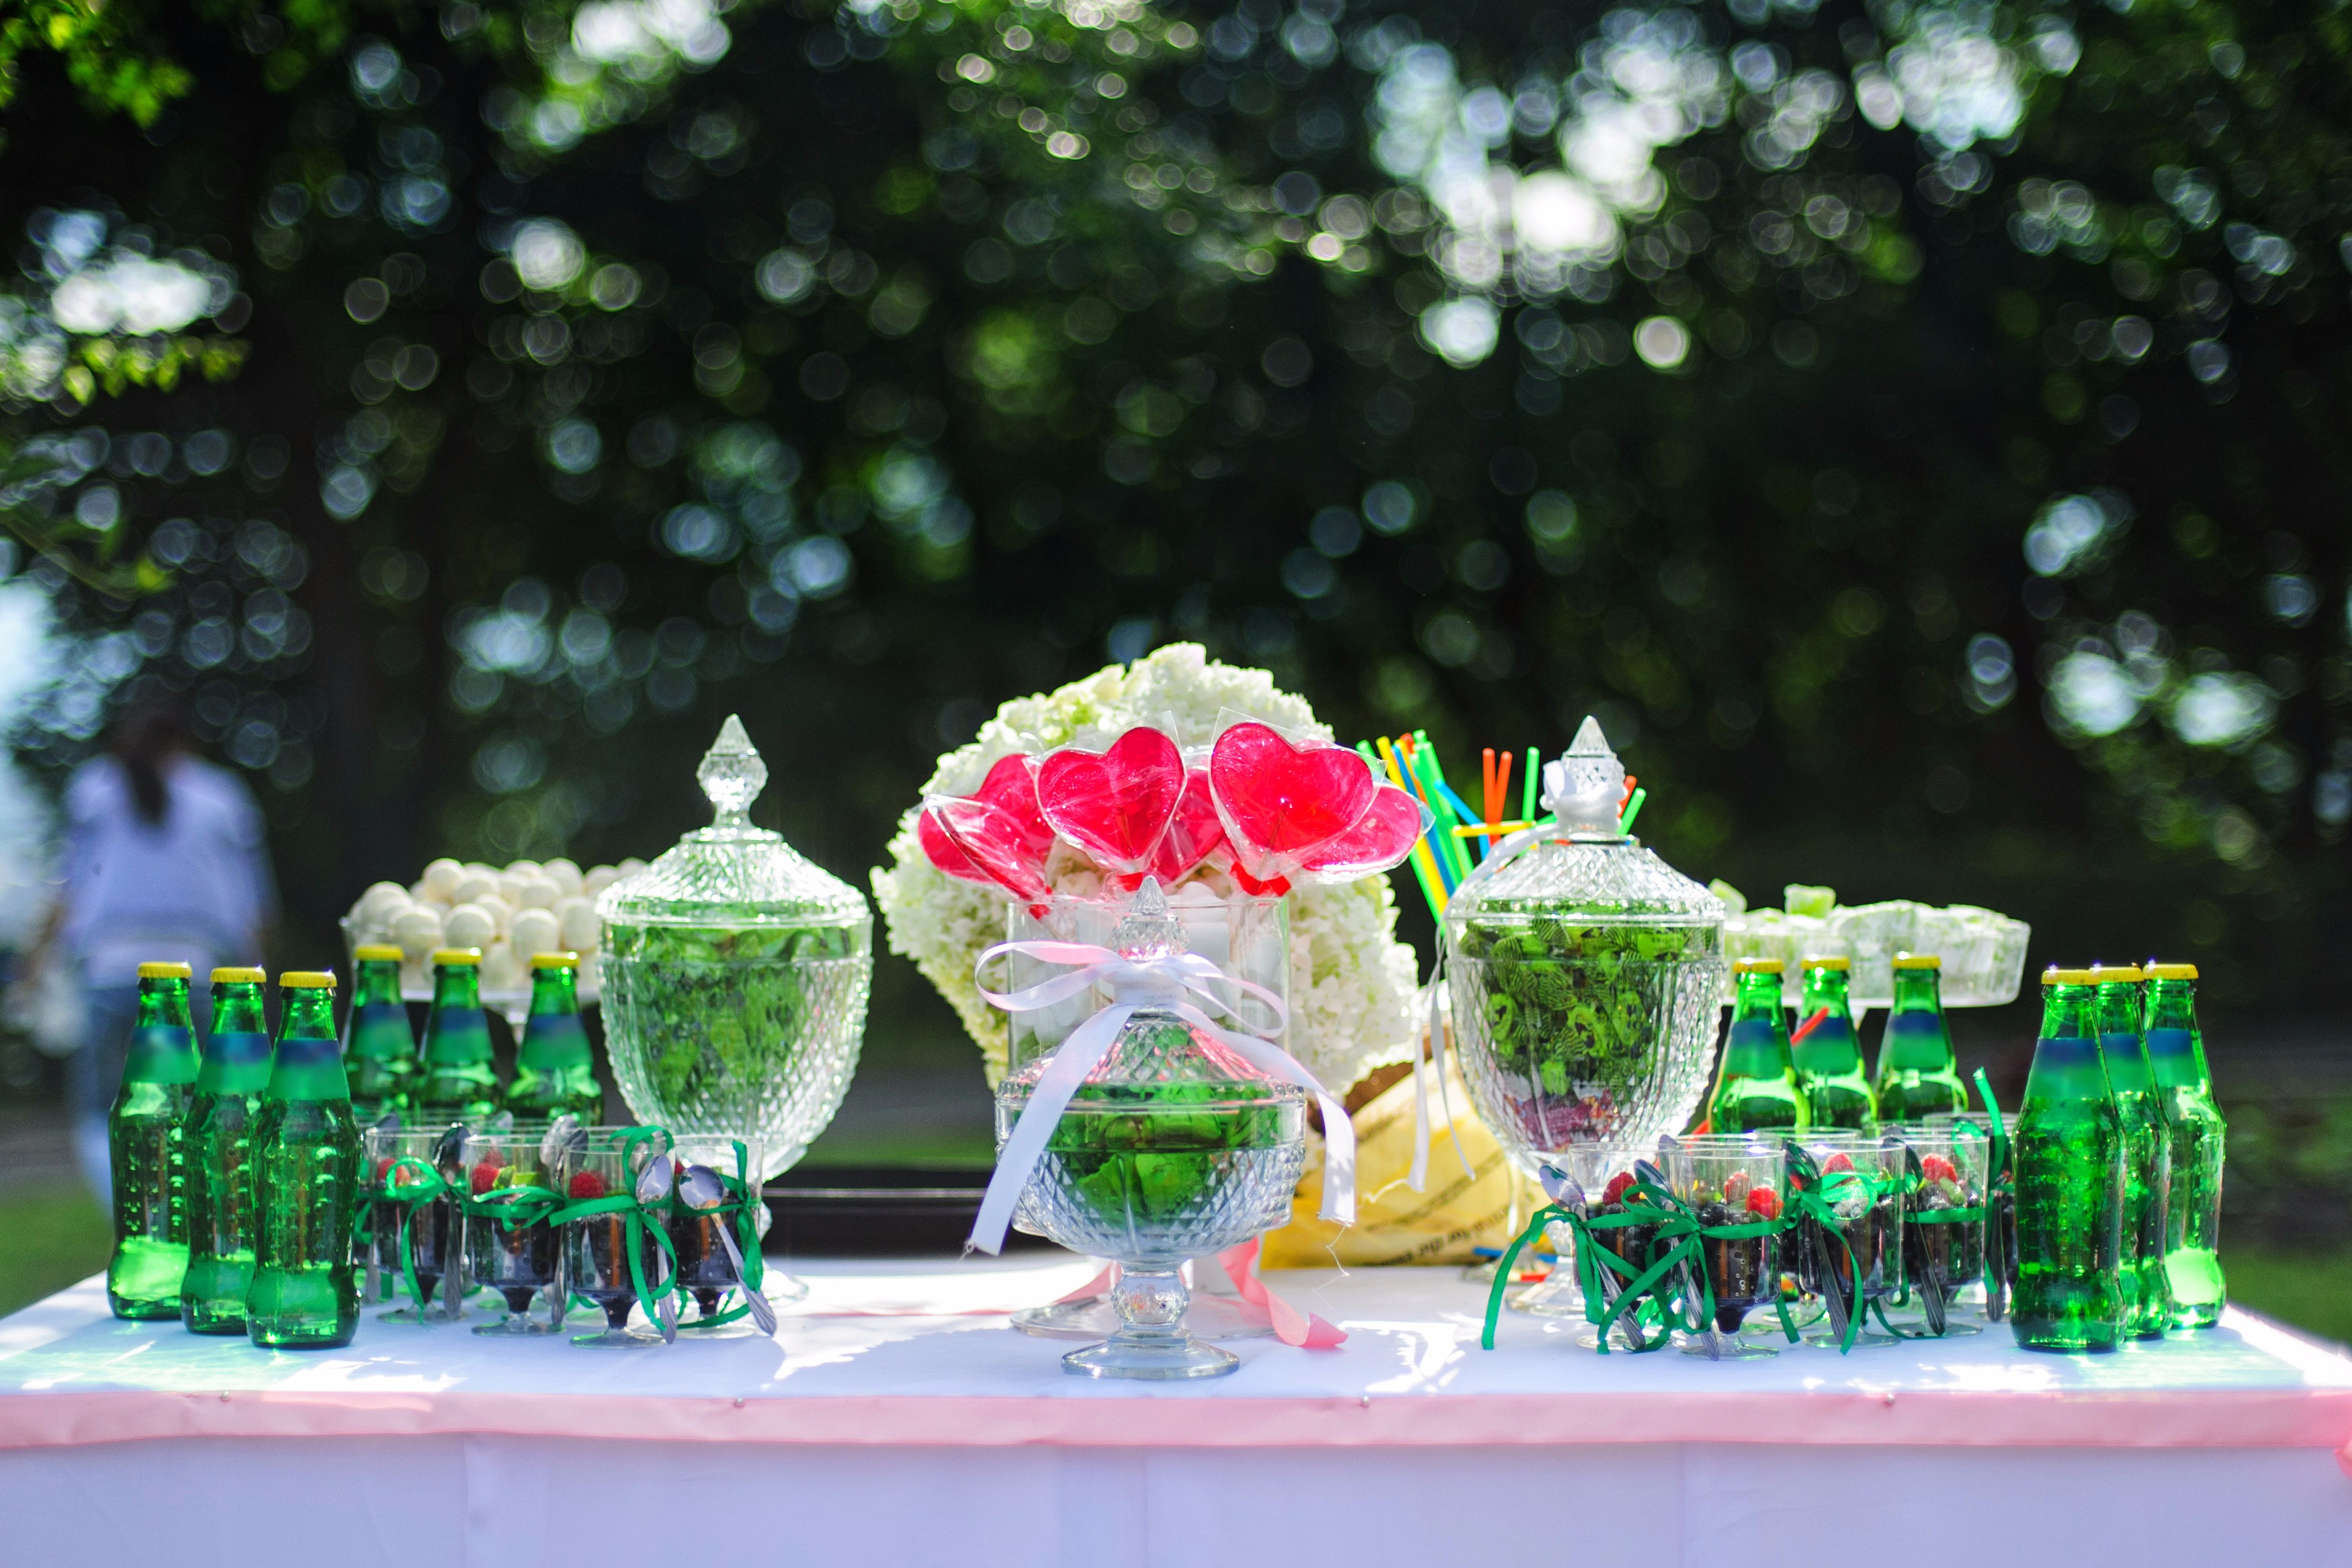 Green wedding candy bar with red hearts and bottles for drinks